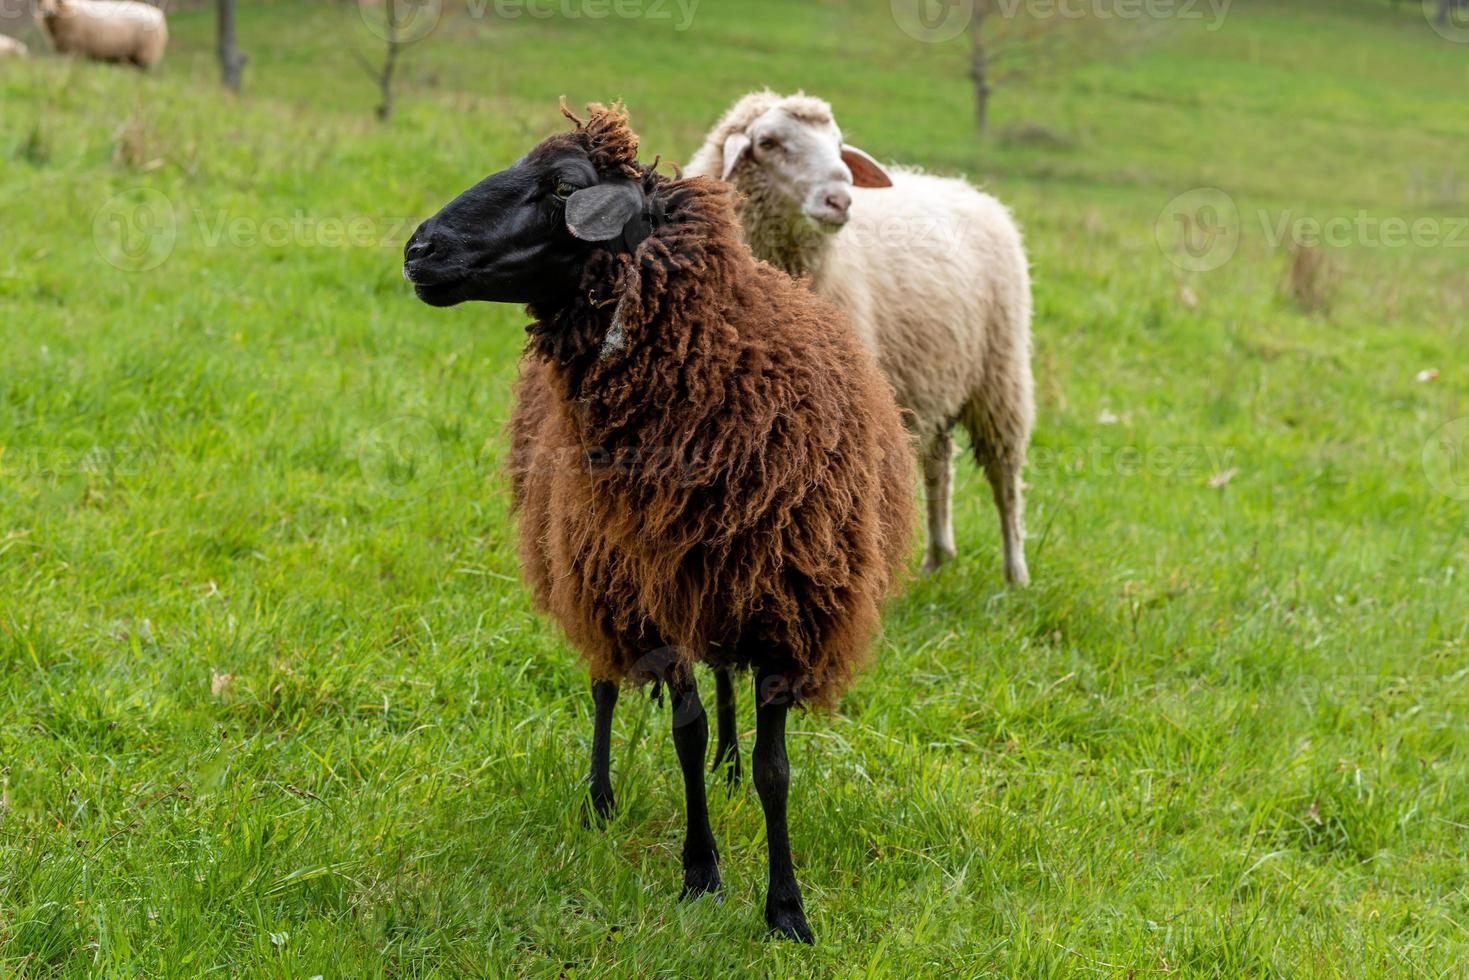 A brown sheep stands in a meadow in front of other sheep photo